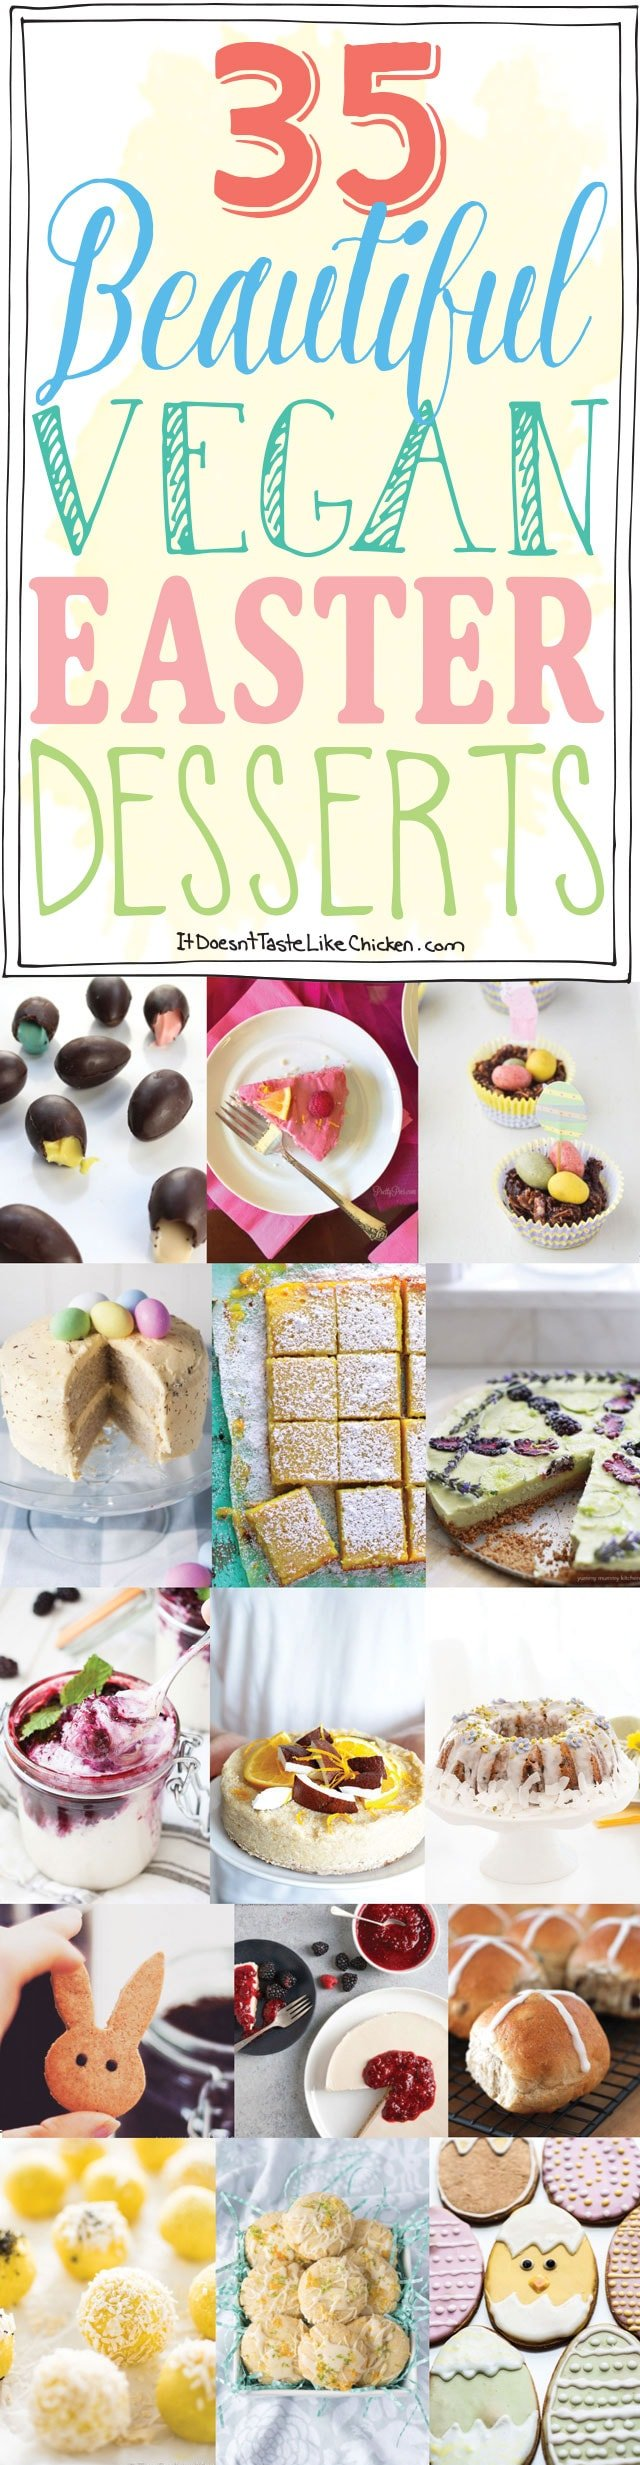 35 Beautiful Vegan Easter Desserts that are totally Easter Bunny approved. Chocolate, candies, cookies, cakes and more delicious recipes. Dairy free, egg free. #itdoesnttastelikechicken